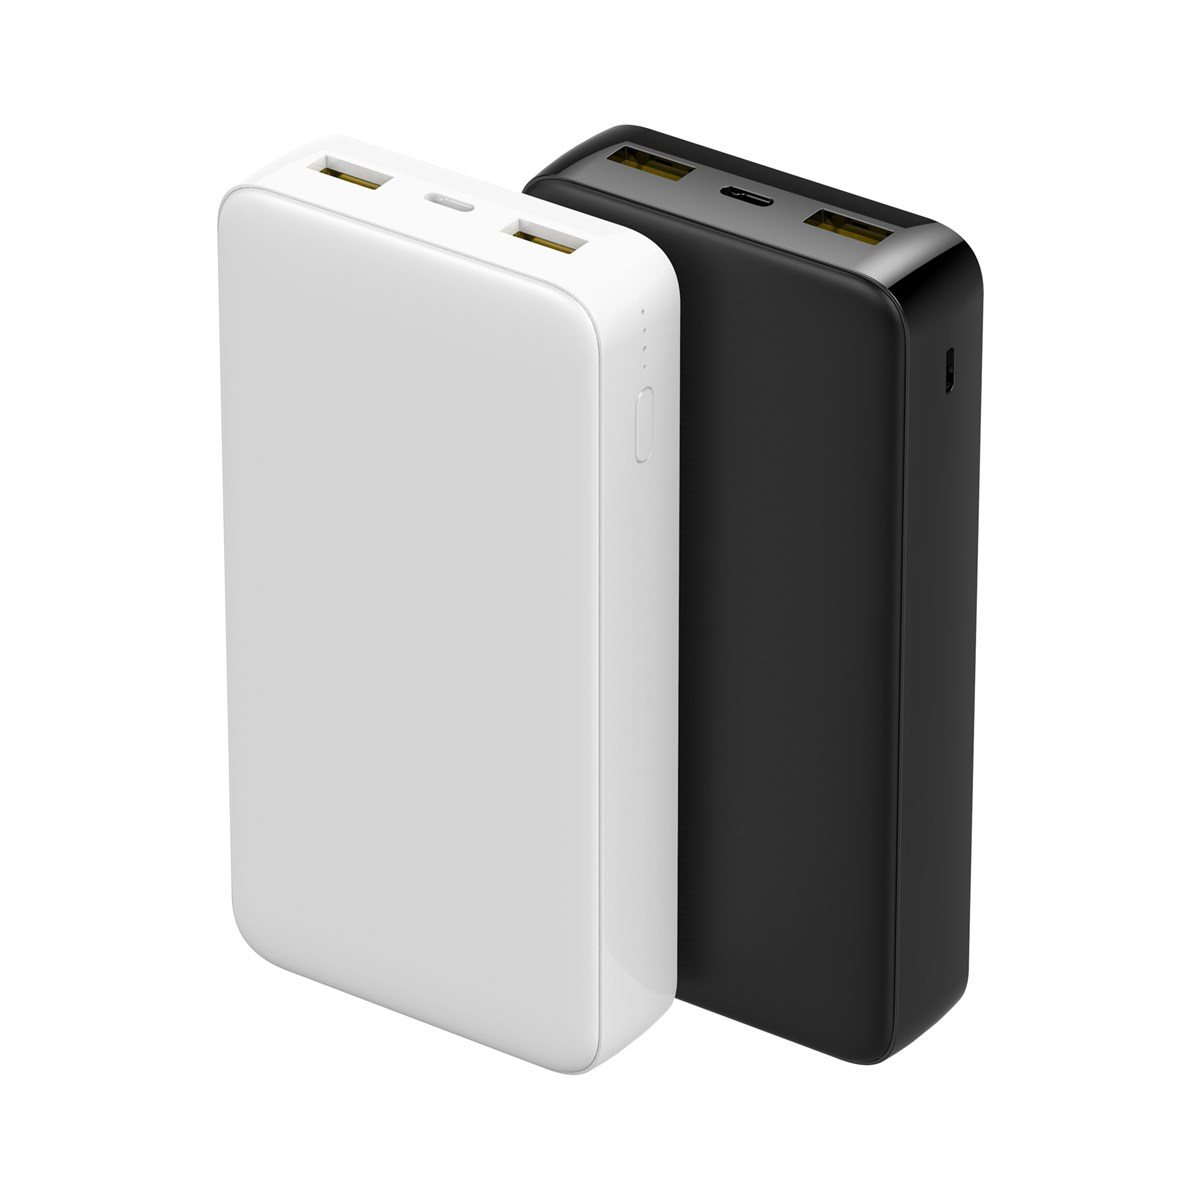 2019 Newest Product PDQC30 quick charge 18W 20000mAh power bank USB C PD portable charger